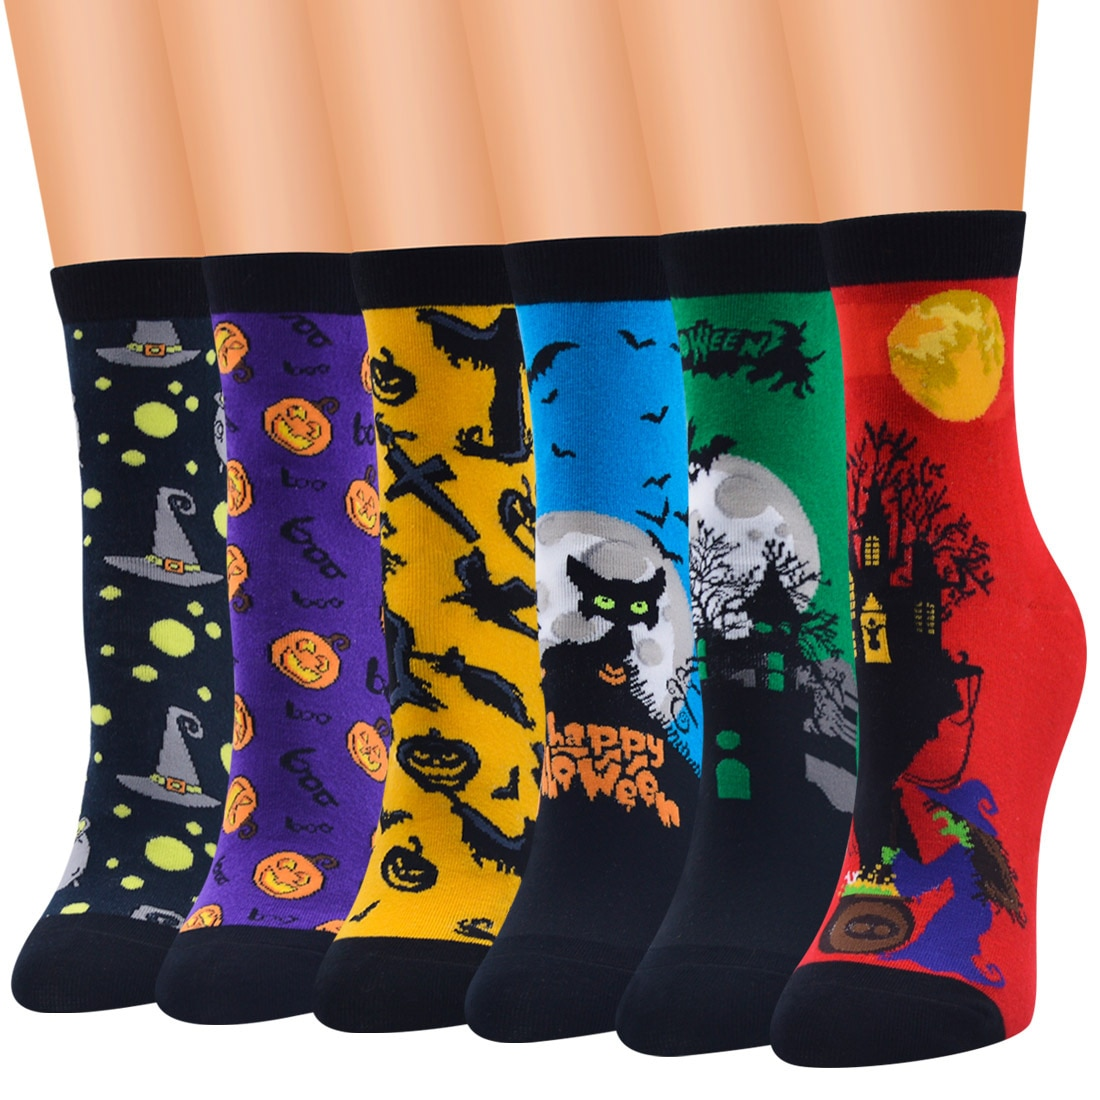 One Size Fit Most Latest Fashion New Style Combed Cotton Knitted Halloween Socks For Women